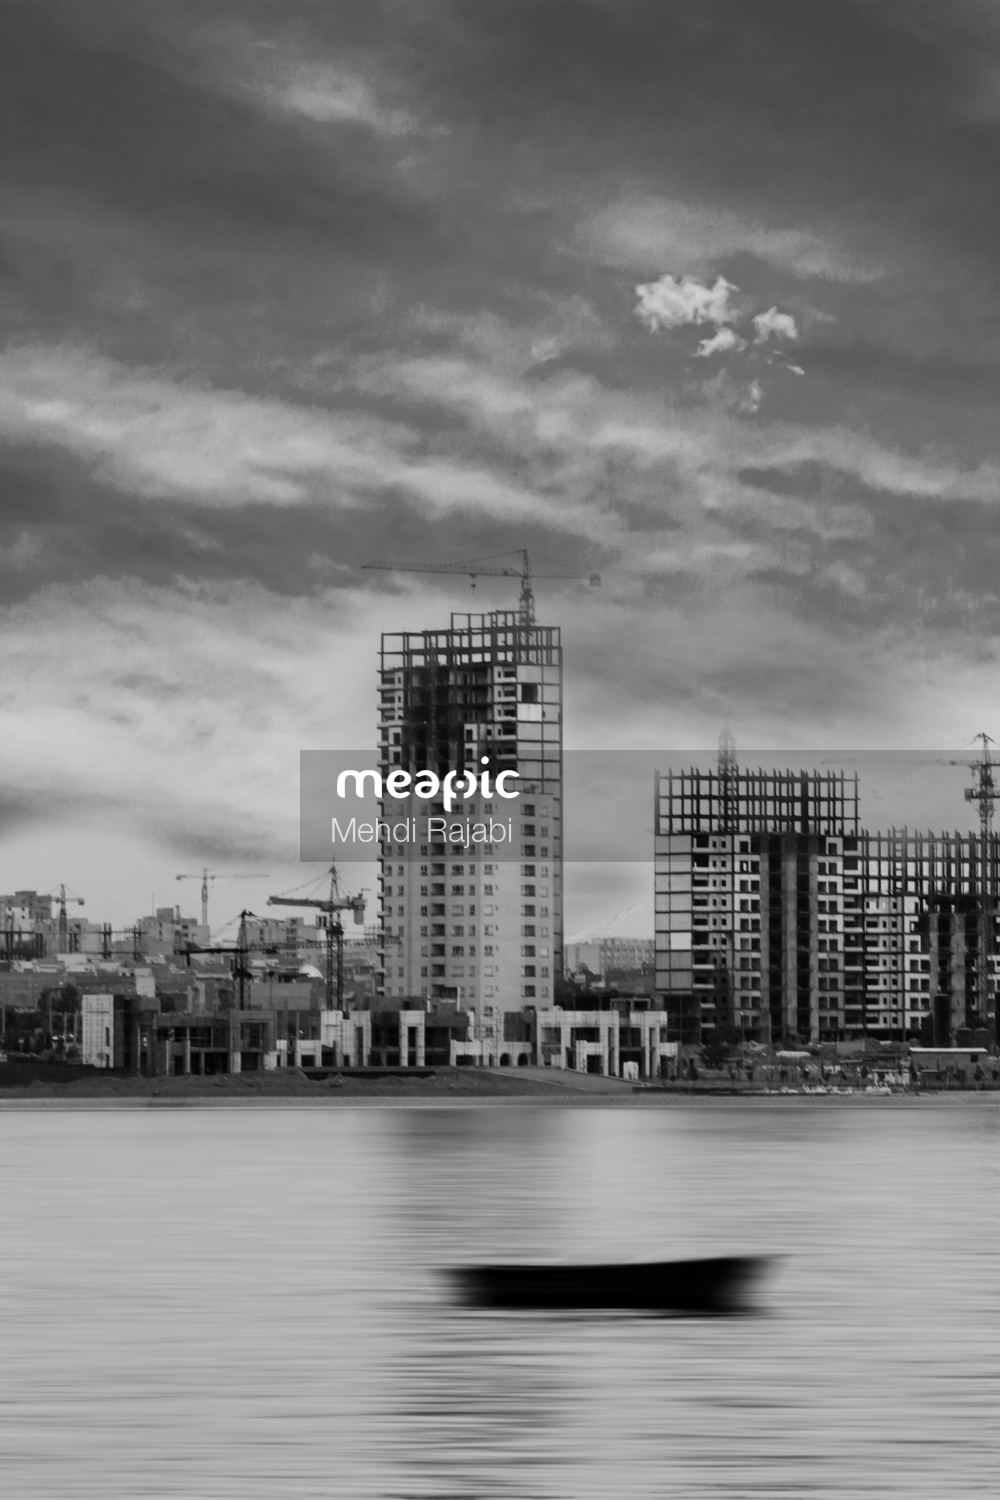 Body Of Water With A City In The Background Stock Photo · Meapic